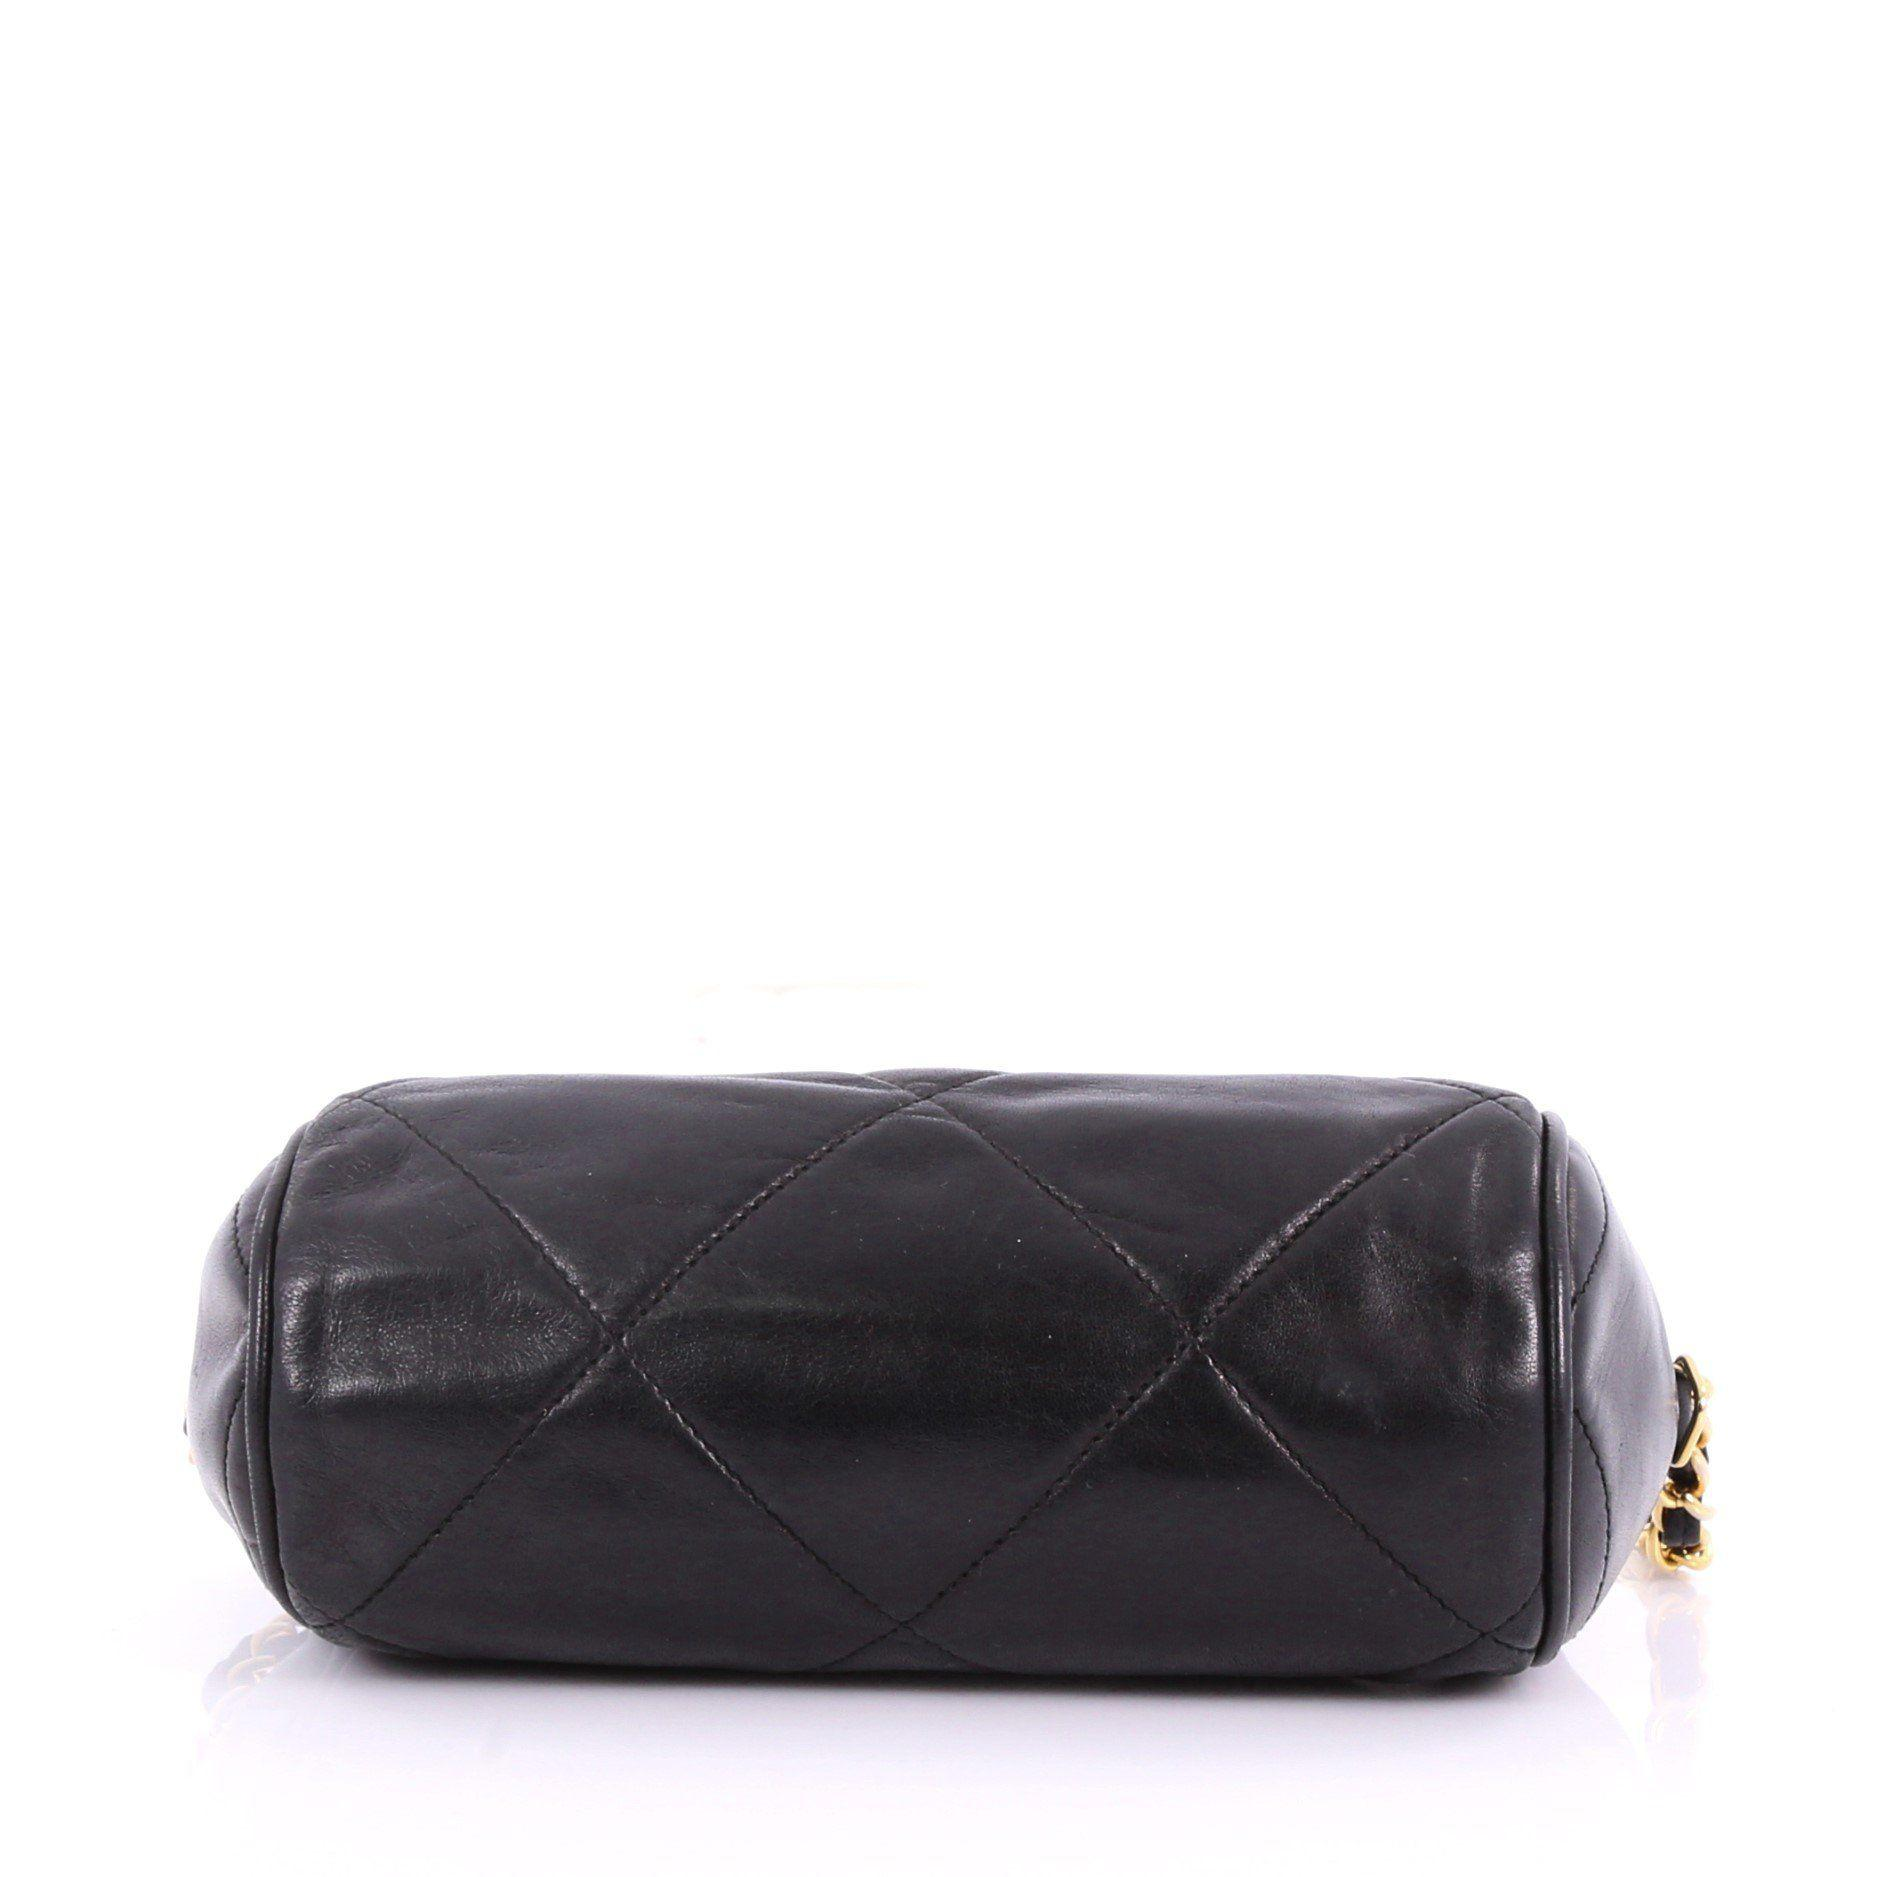 a3d29cc712fc Lyst - Chanel Pre Owned Vintage Diamond Cc Barrel Bag Quilted ...